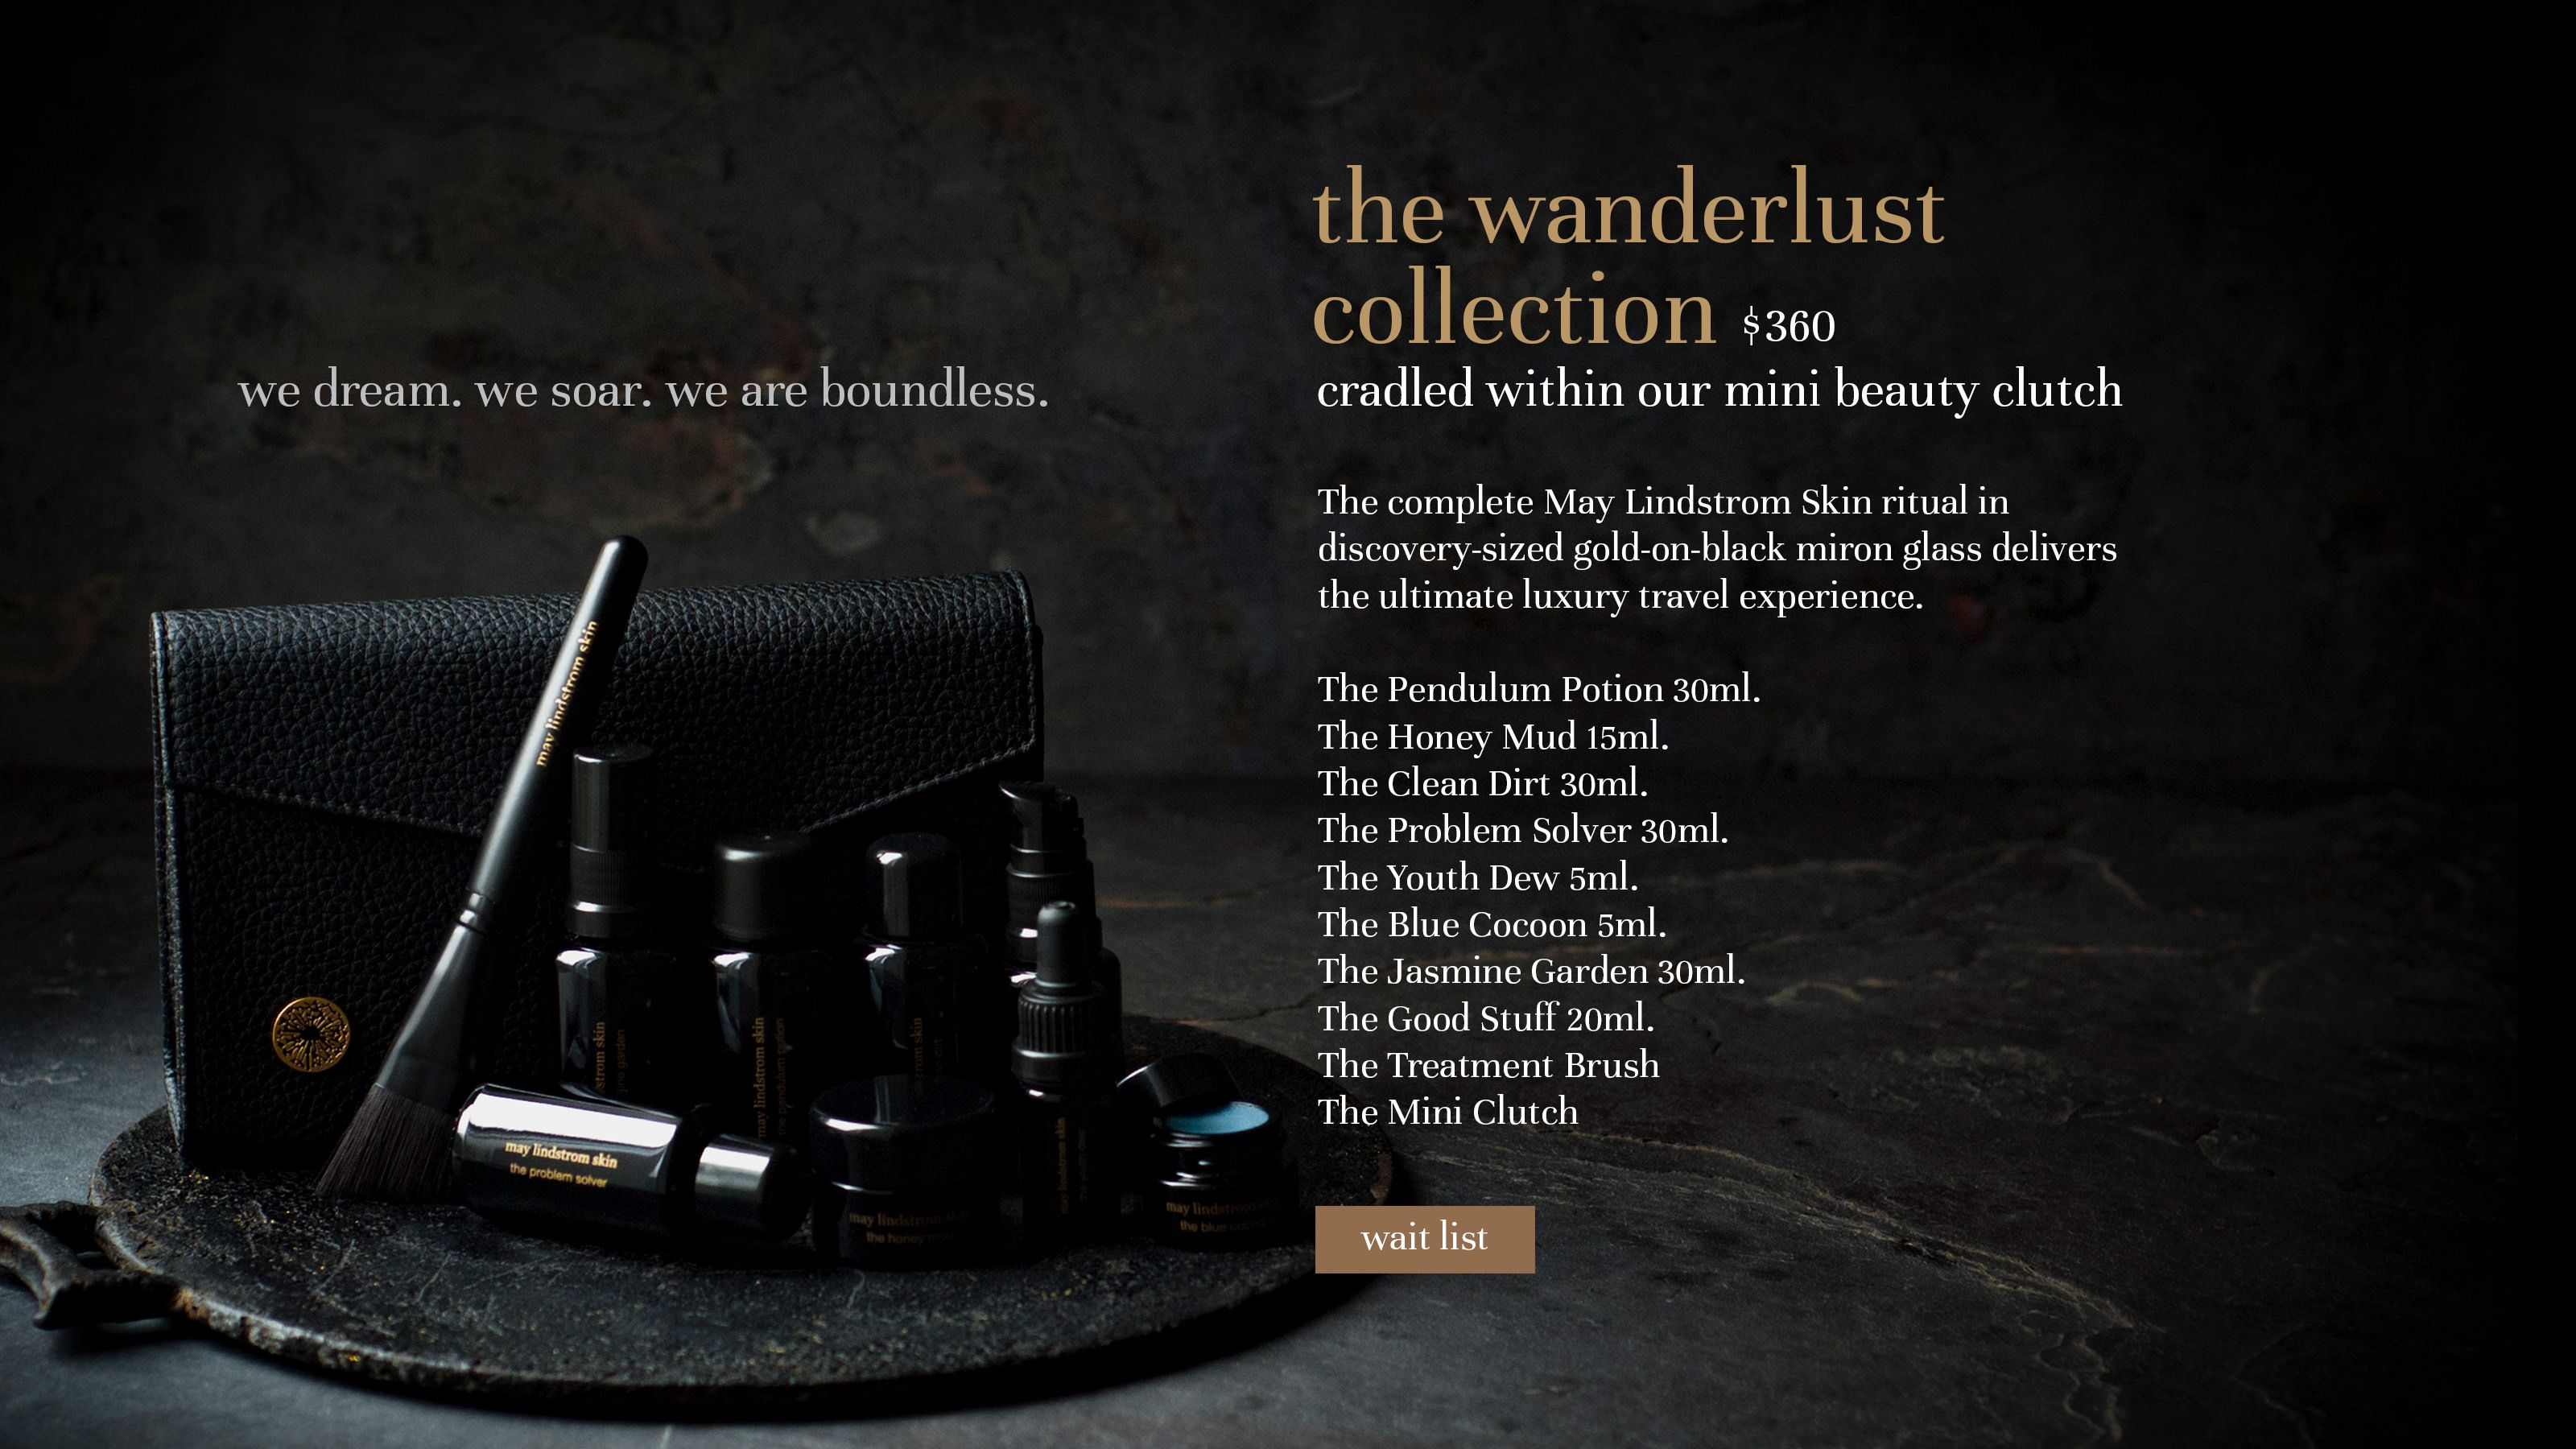 the wanderlust collection $360 we dream. we soar. we are boundless. cradled within our mini beauty clutch The complete May Lindstrom Skin ritual in discovery-sized gold-on-black miron glass delivers the ultimate luxury travel experience.  The Pendulum Potion 30ml. The Honey Mud 15m1. The Clean Dirt 30ml. The Problem Solver 30m1. The Youth Dew 5m1. The Blue Cocoon 5m1. The Jasmine Garden 30ml. The Good Stuff 20ml. The Treatment Brush The Mini Clutch